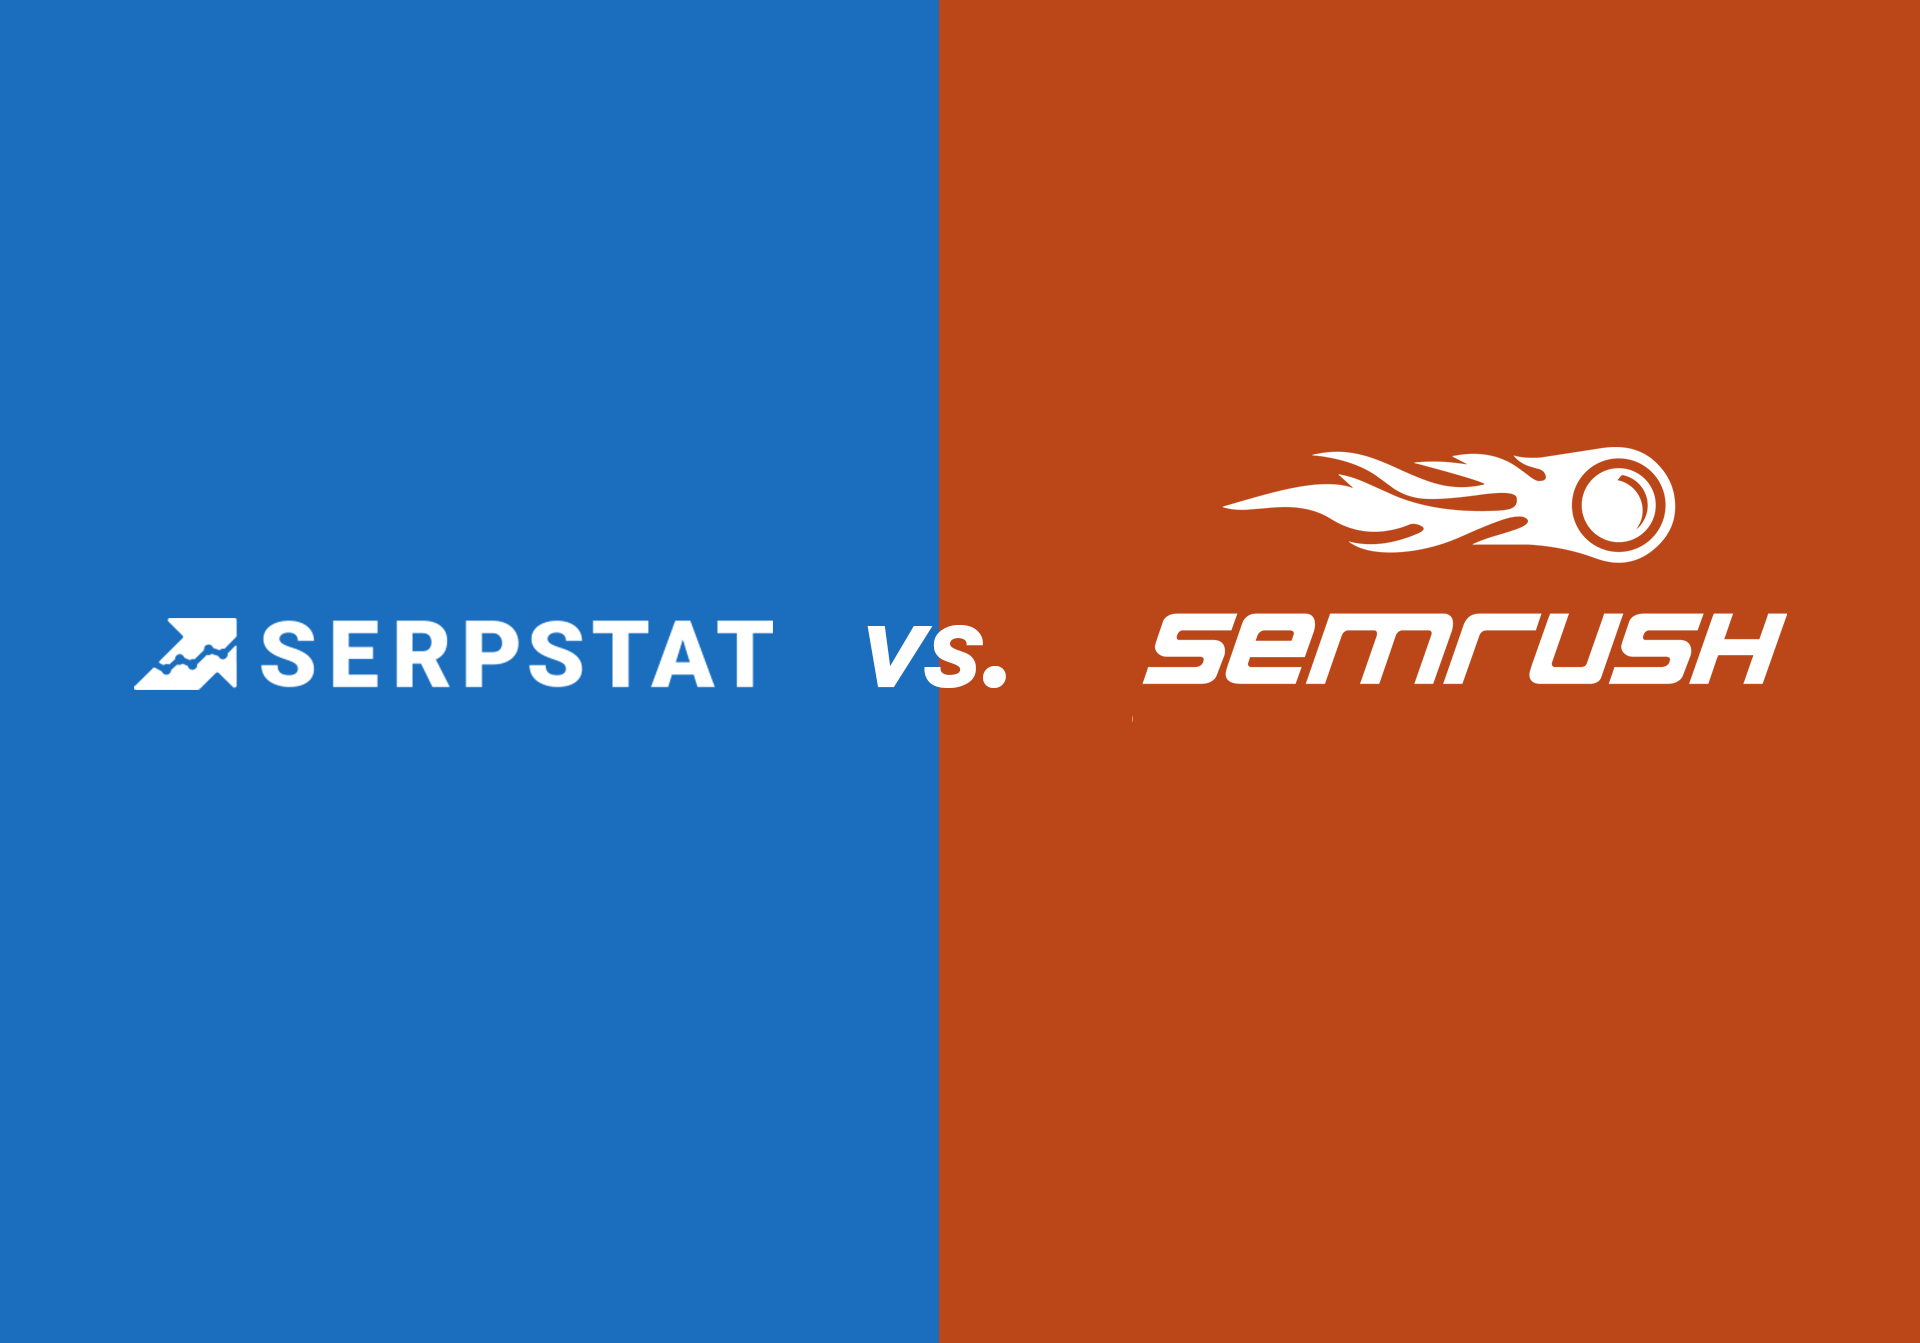 Discount Voucher Codes Semrush April 2020